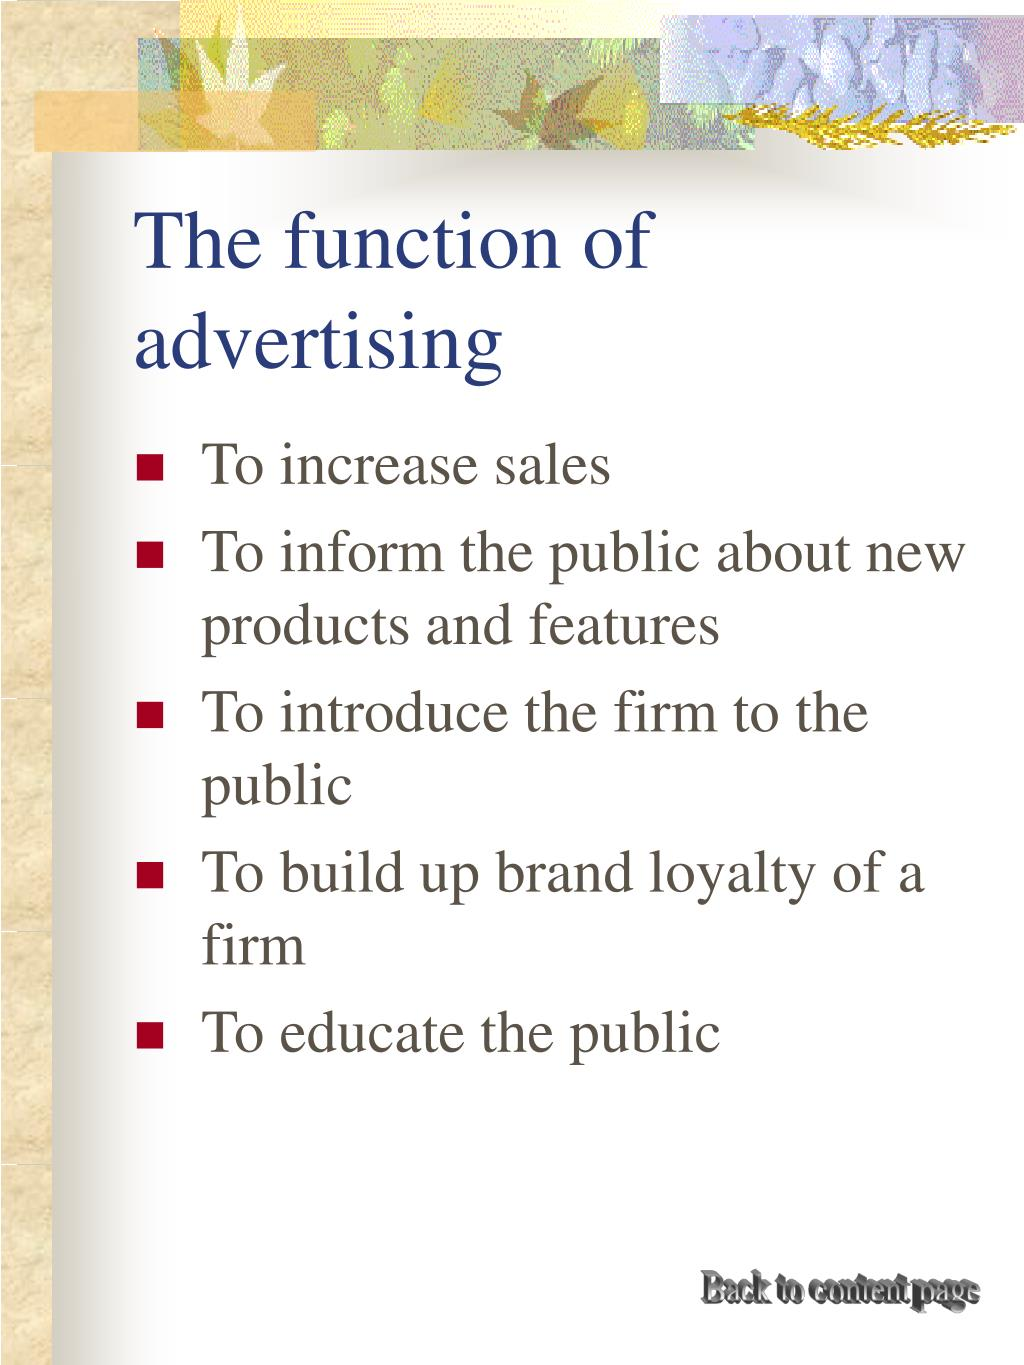 The function of advertising